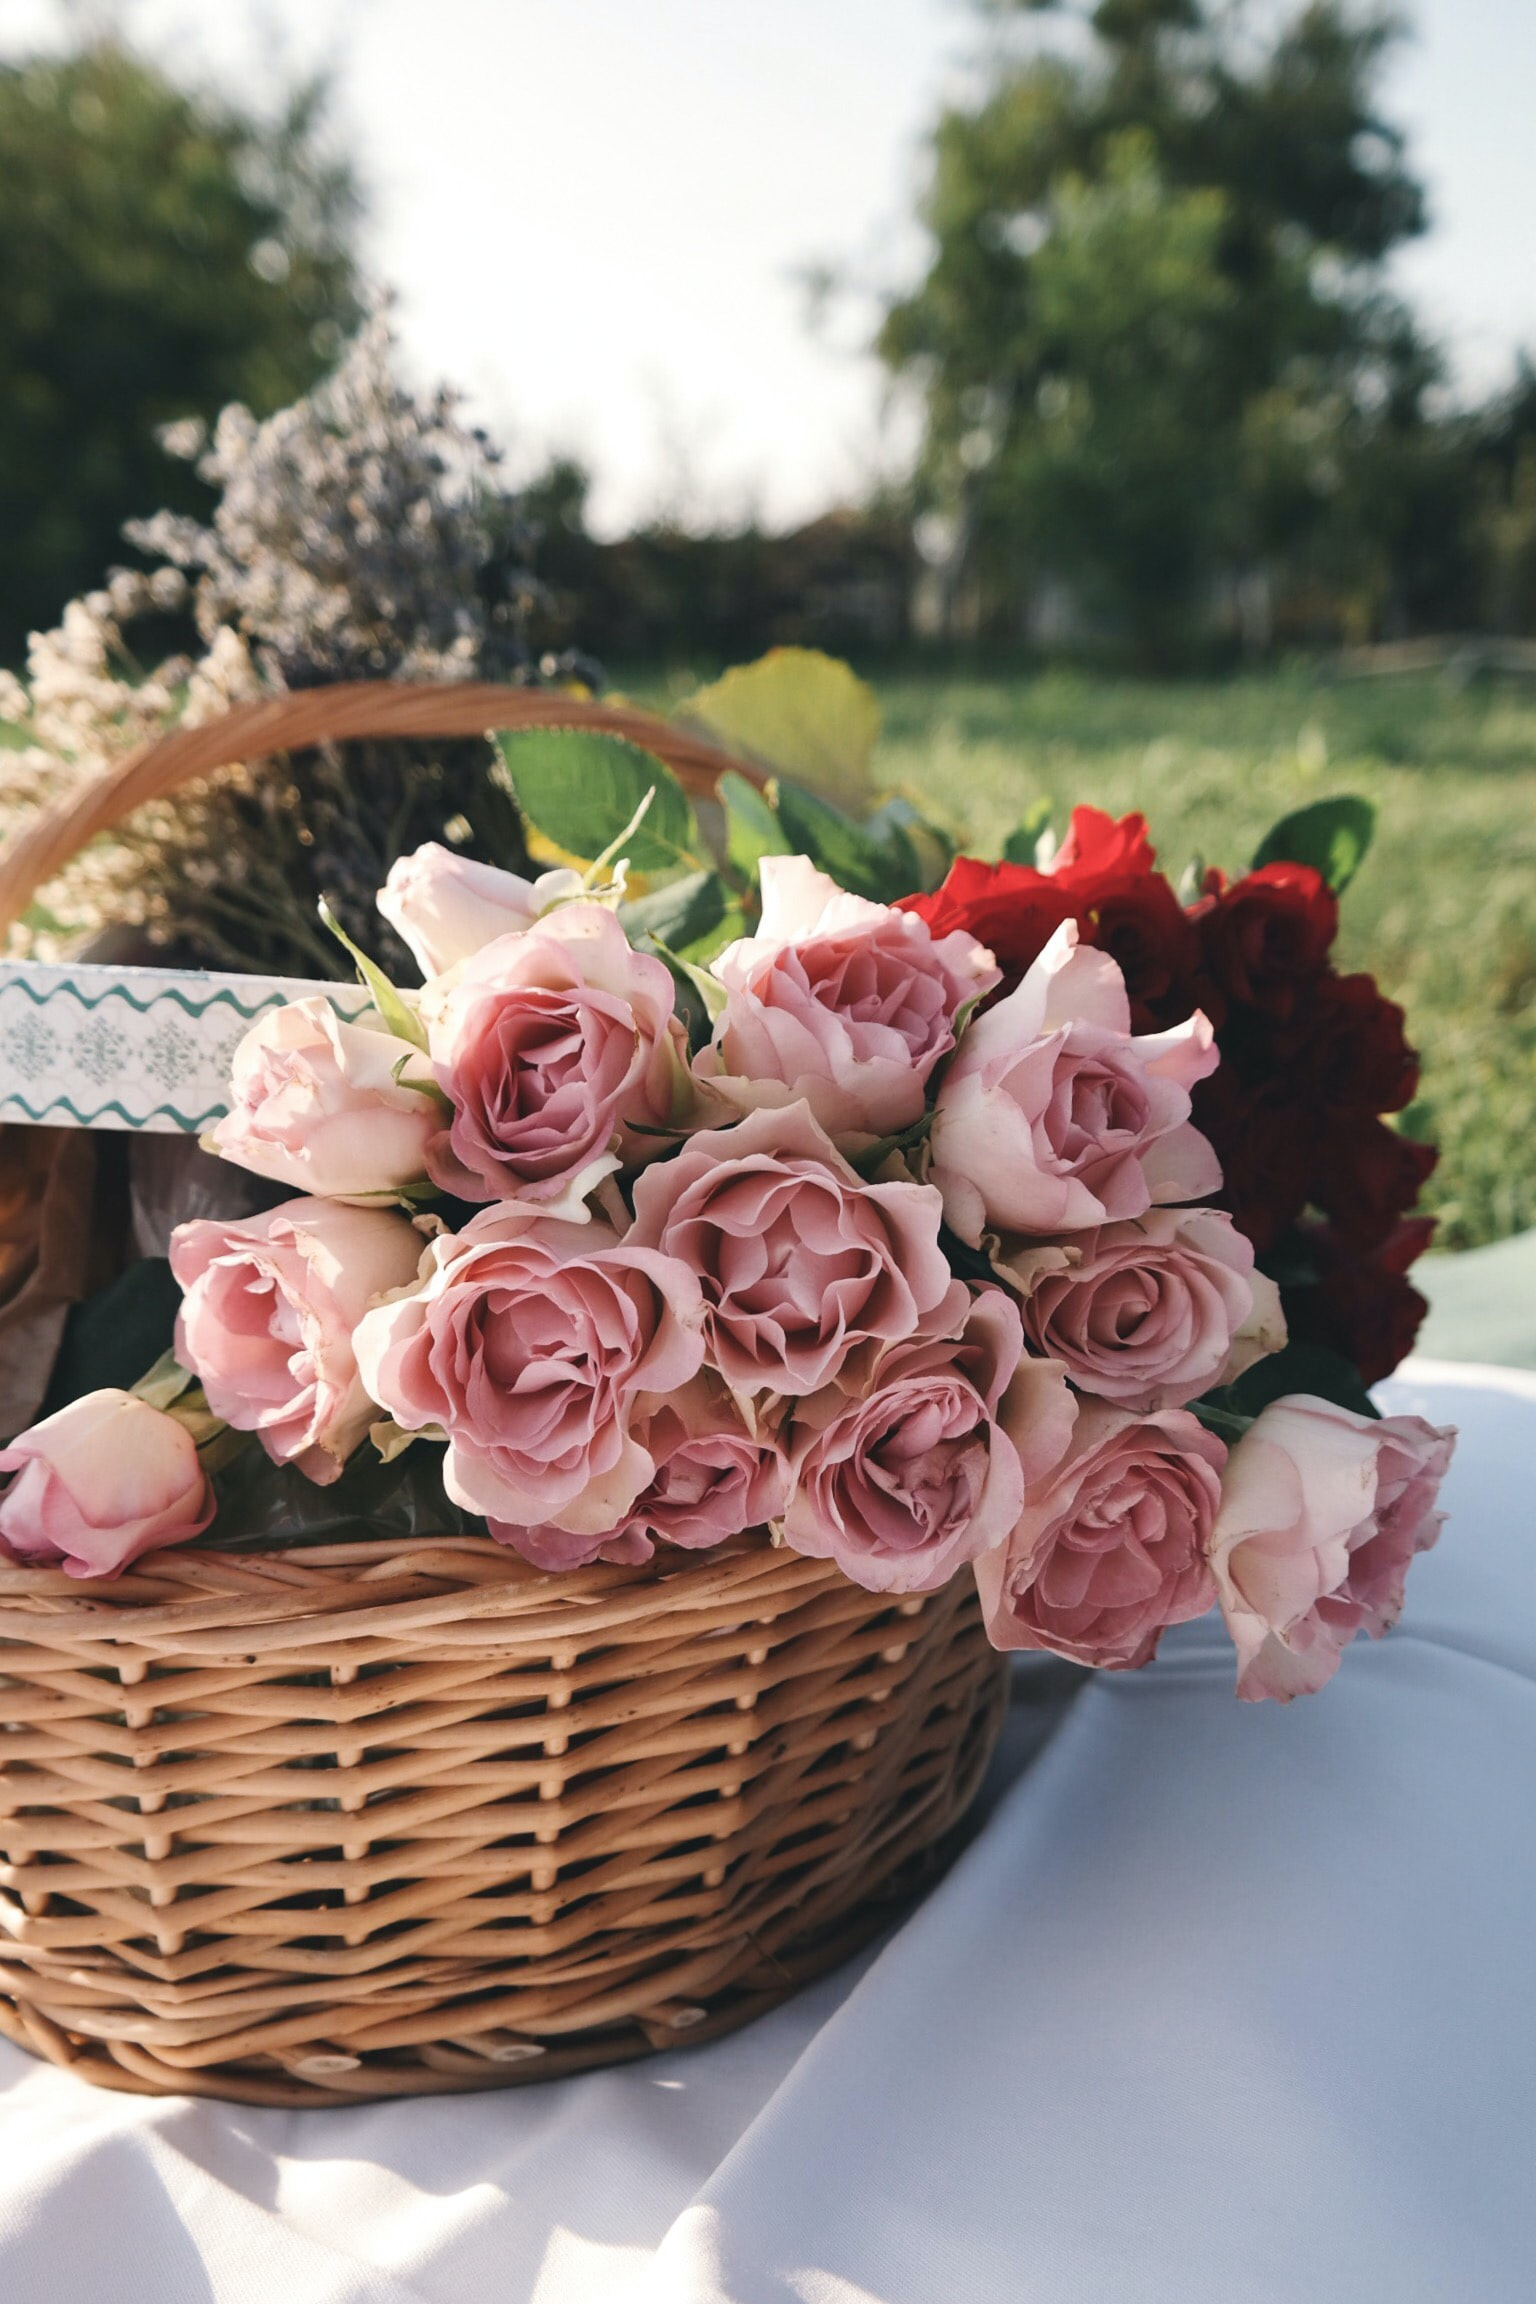 pink rose on wicker basket